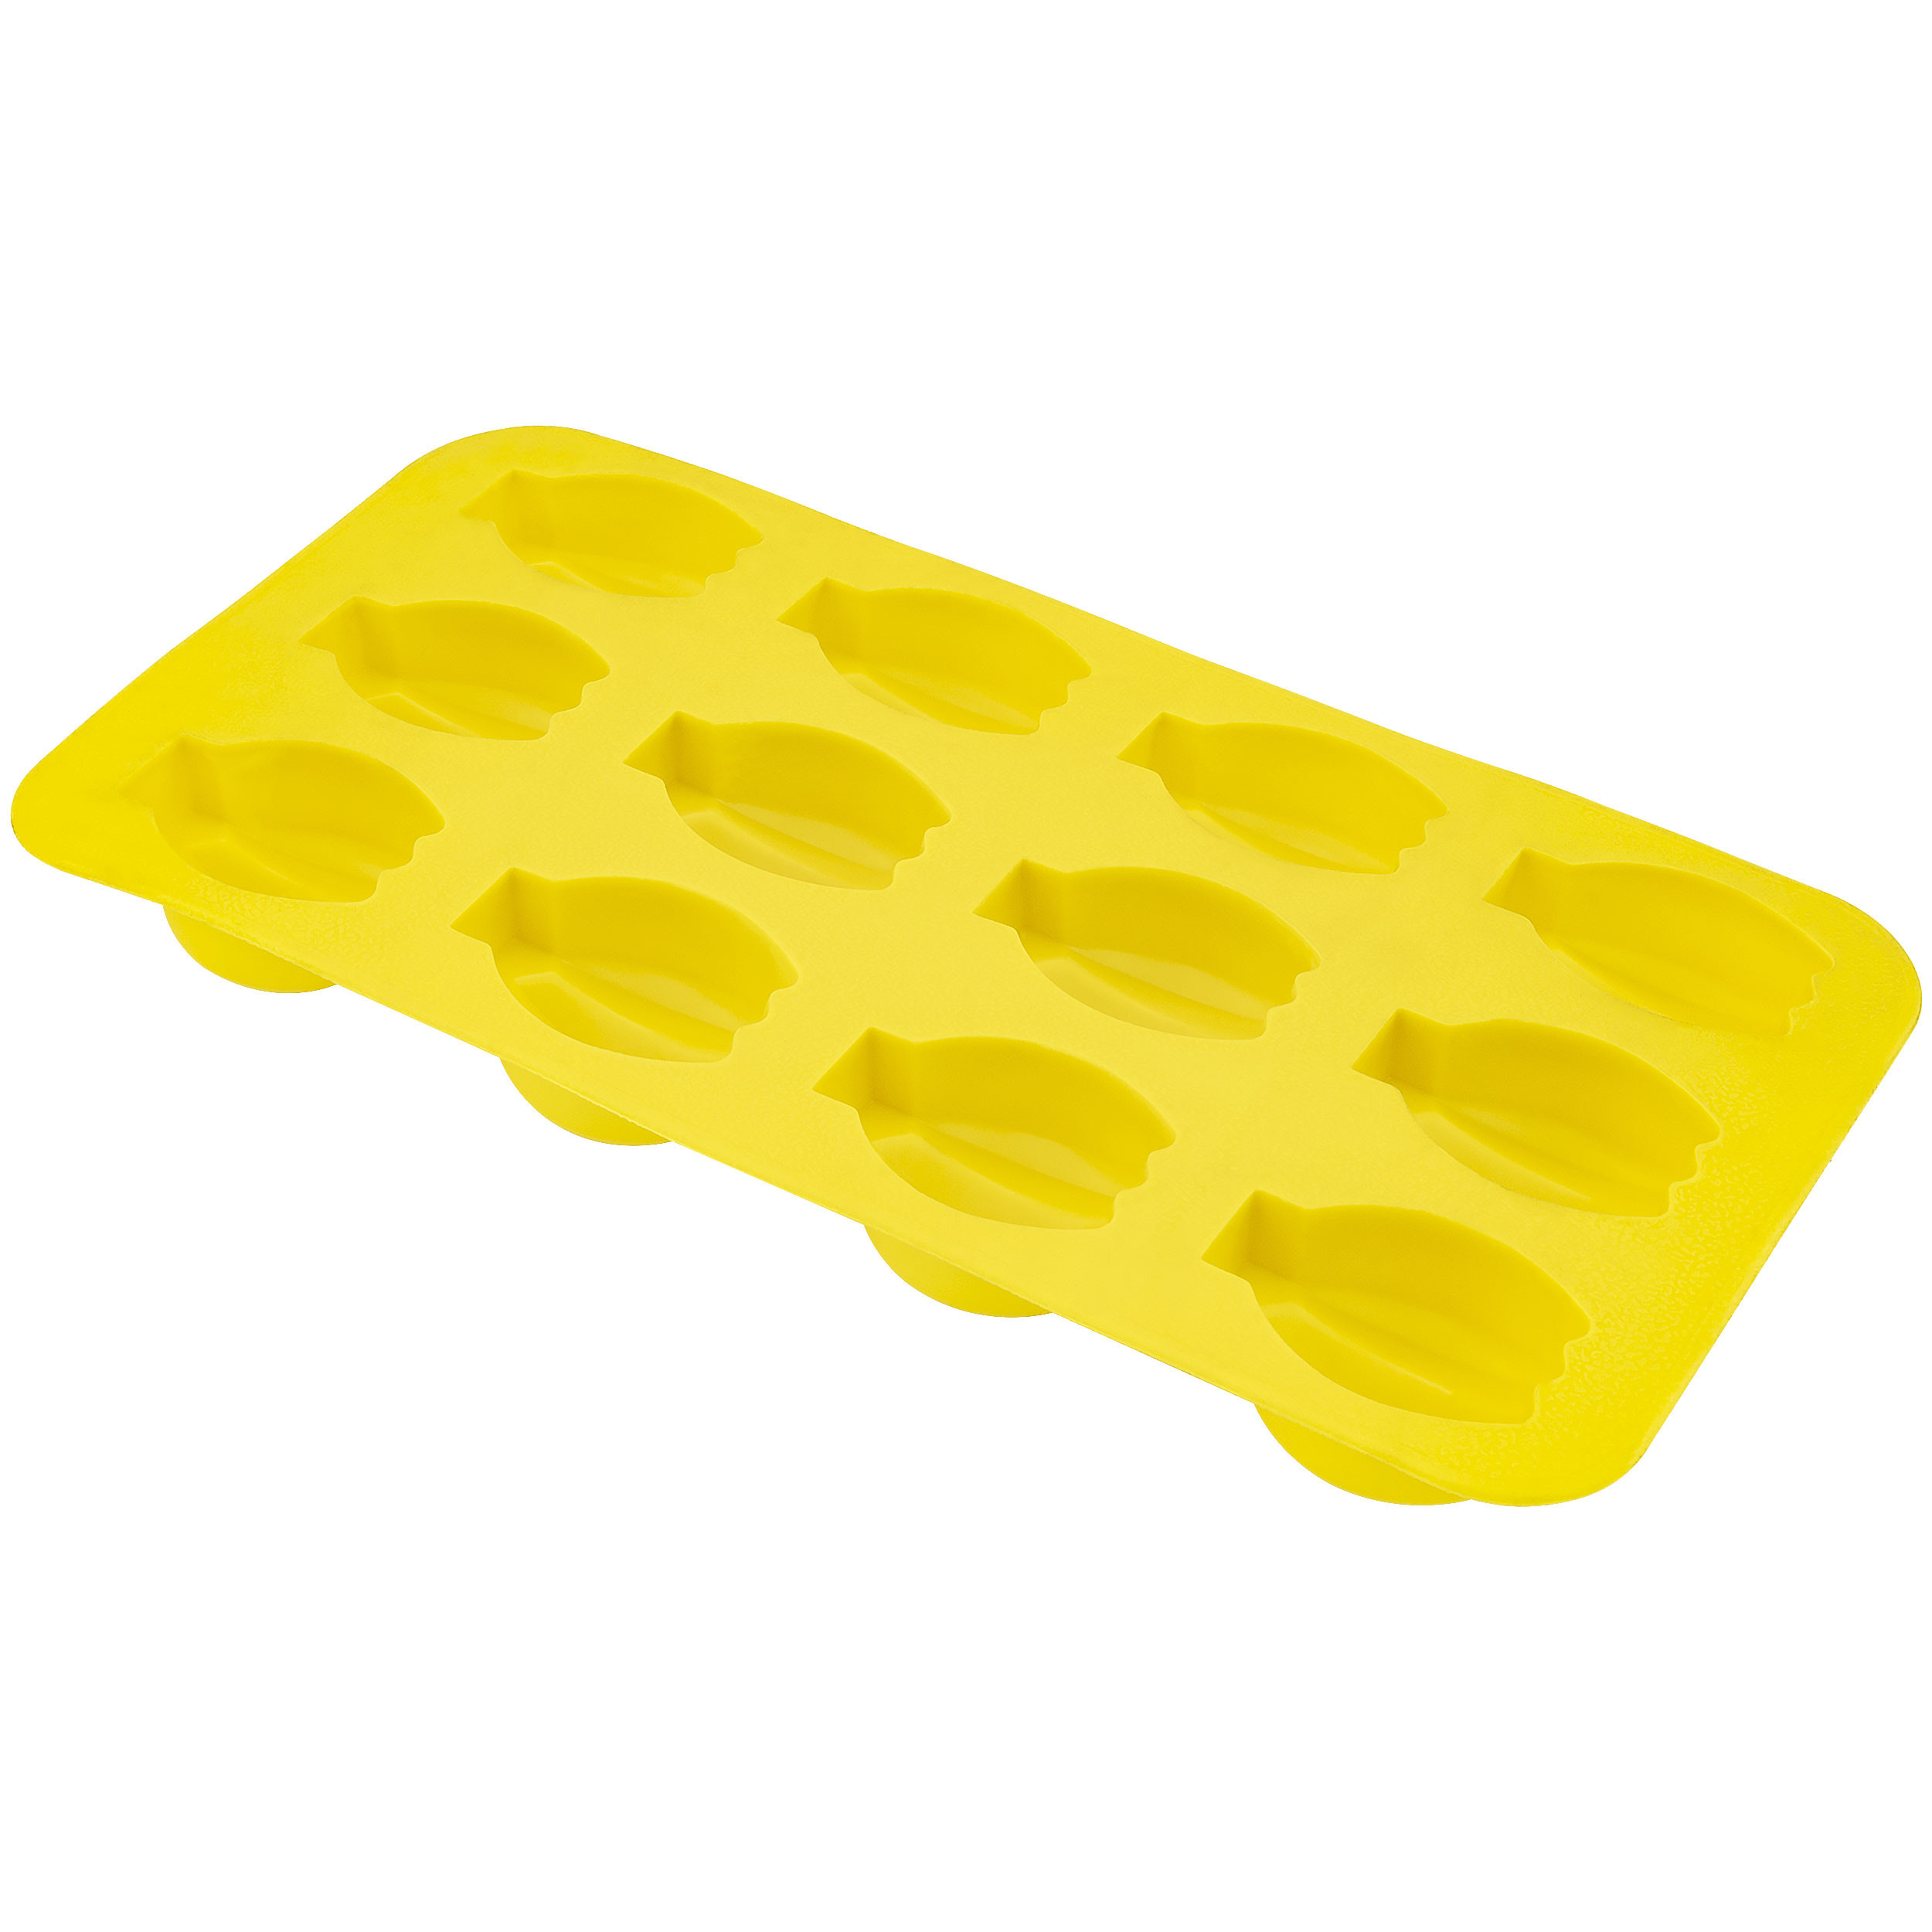 Fairly Odd Novelties FON-10017 Banana Shape Flexible 12 Ice Cube Tray Mold Yellow Rubber Novelty Gag Gift, One Size,